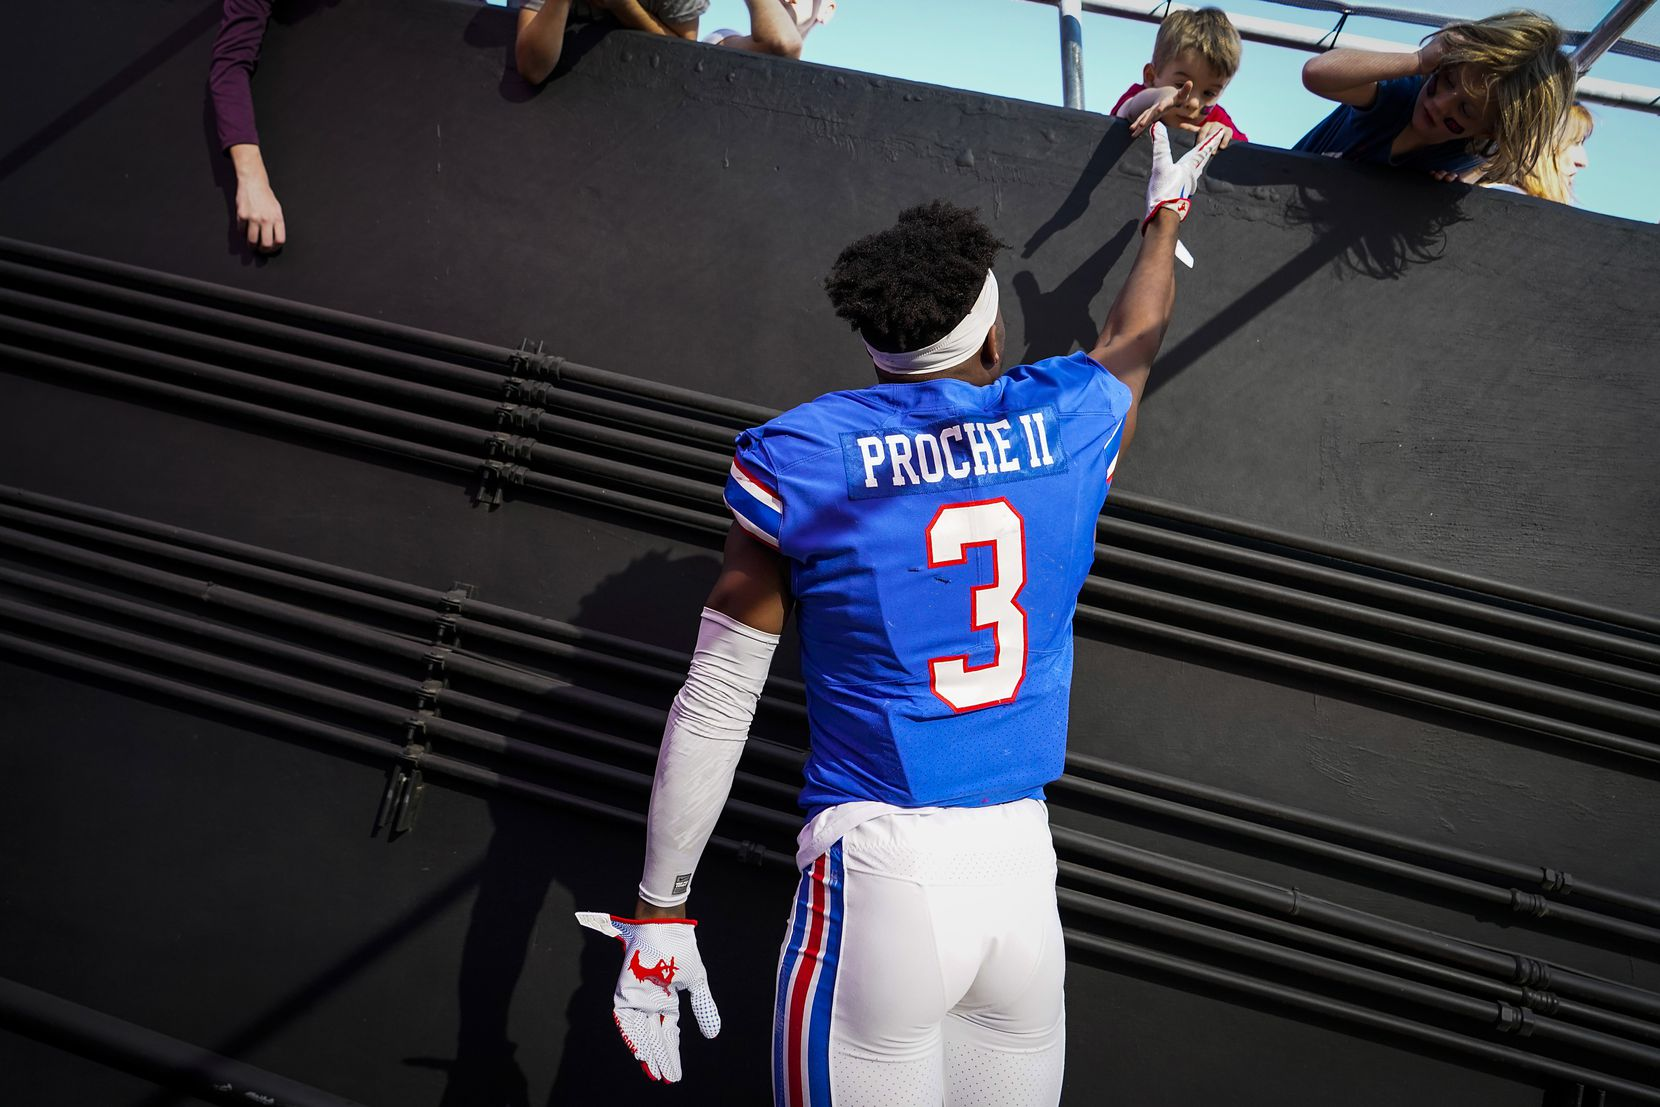 SMU wide receiver James Proche jumps to high five a young fan before an NCAA football game against Tulane at Ford Stadium on Saturday, Nov. 30, 2019, in Dallas.